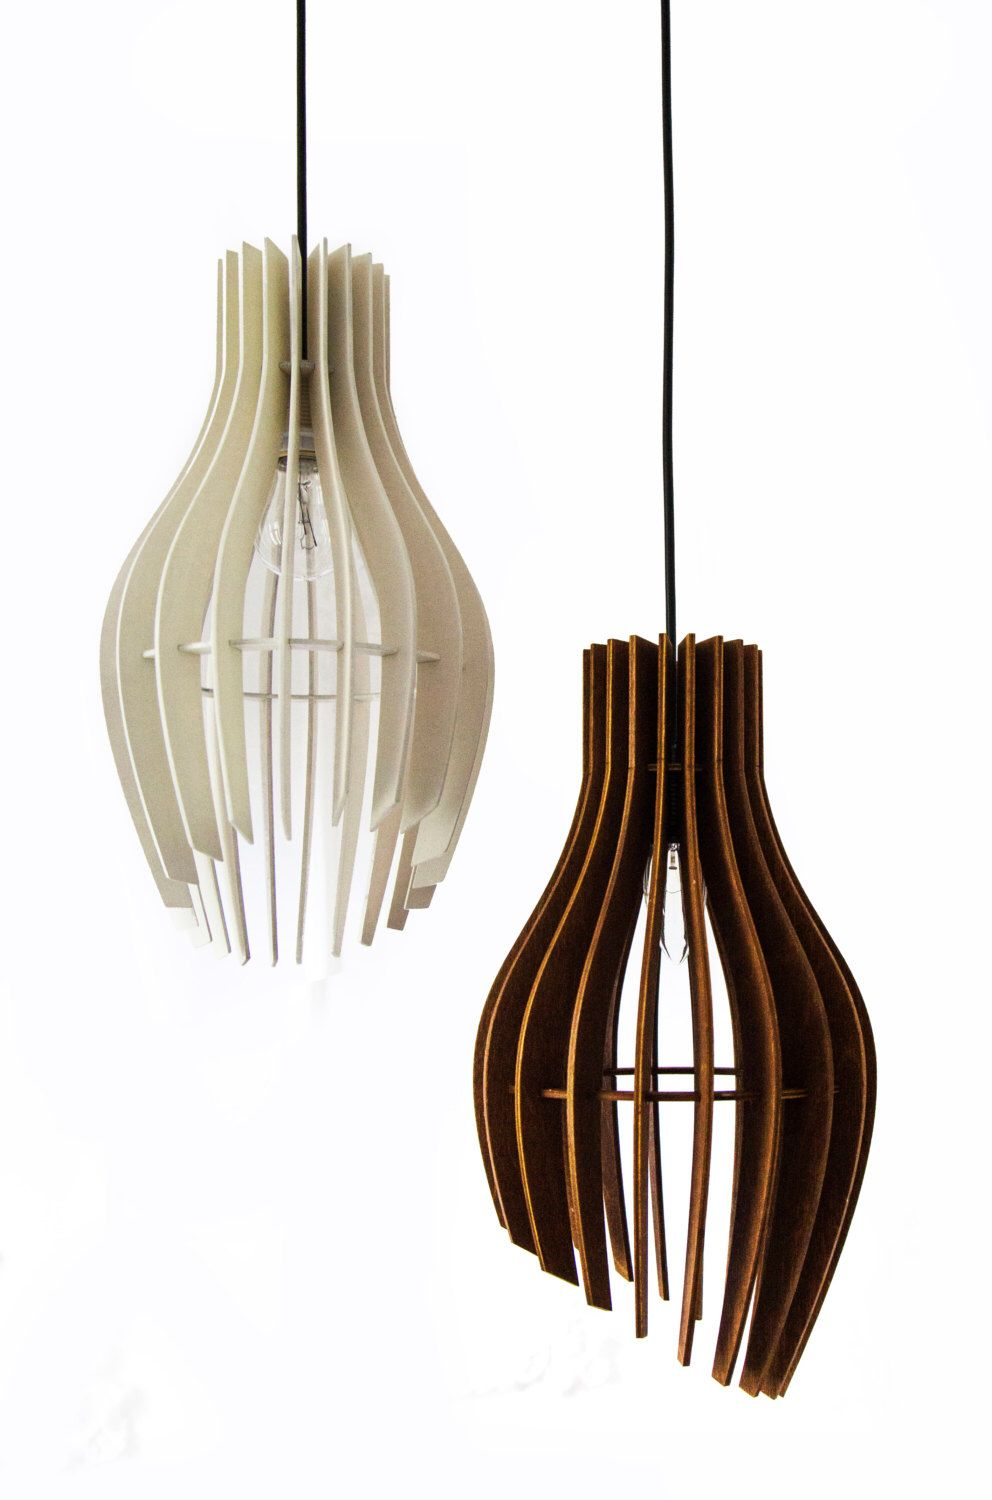 Stripes pendant light wood lamppendant lighting plywood hanging stripes pendant light wood lamppendant lighting plywood hanging light designer aloadofball Images